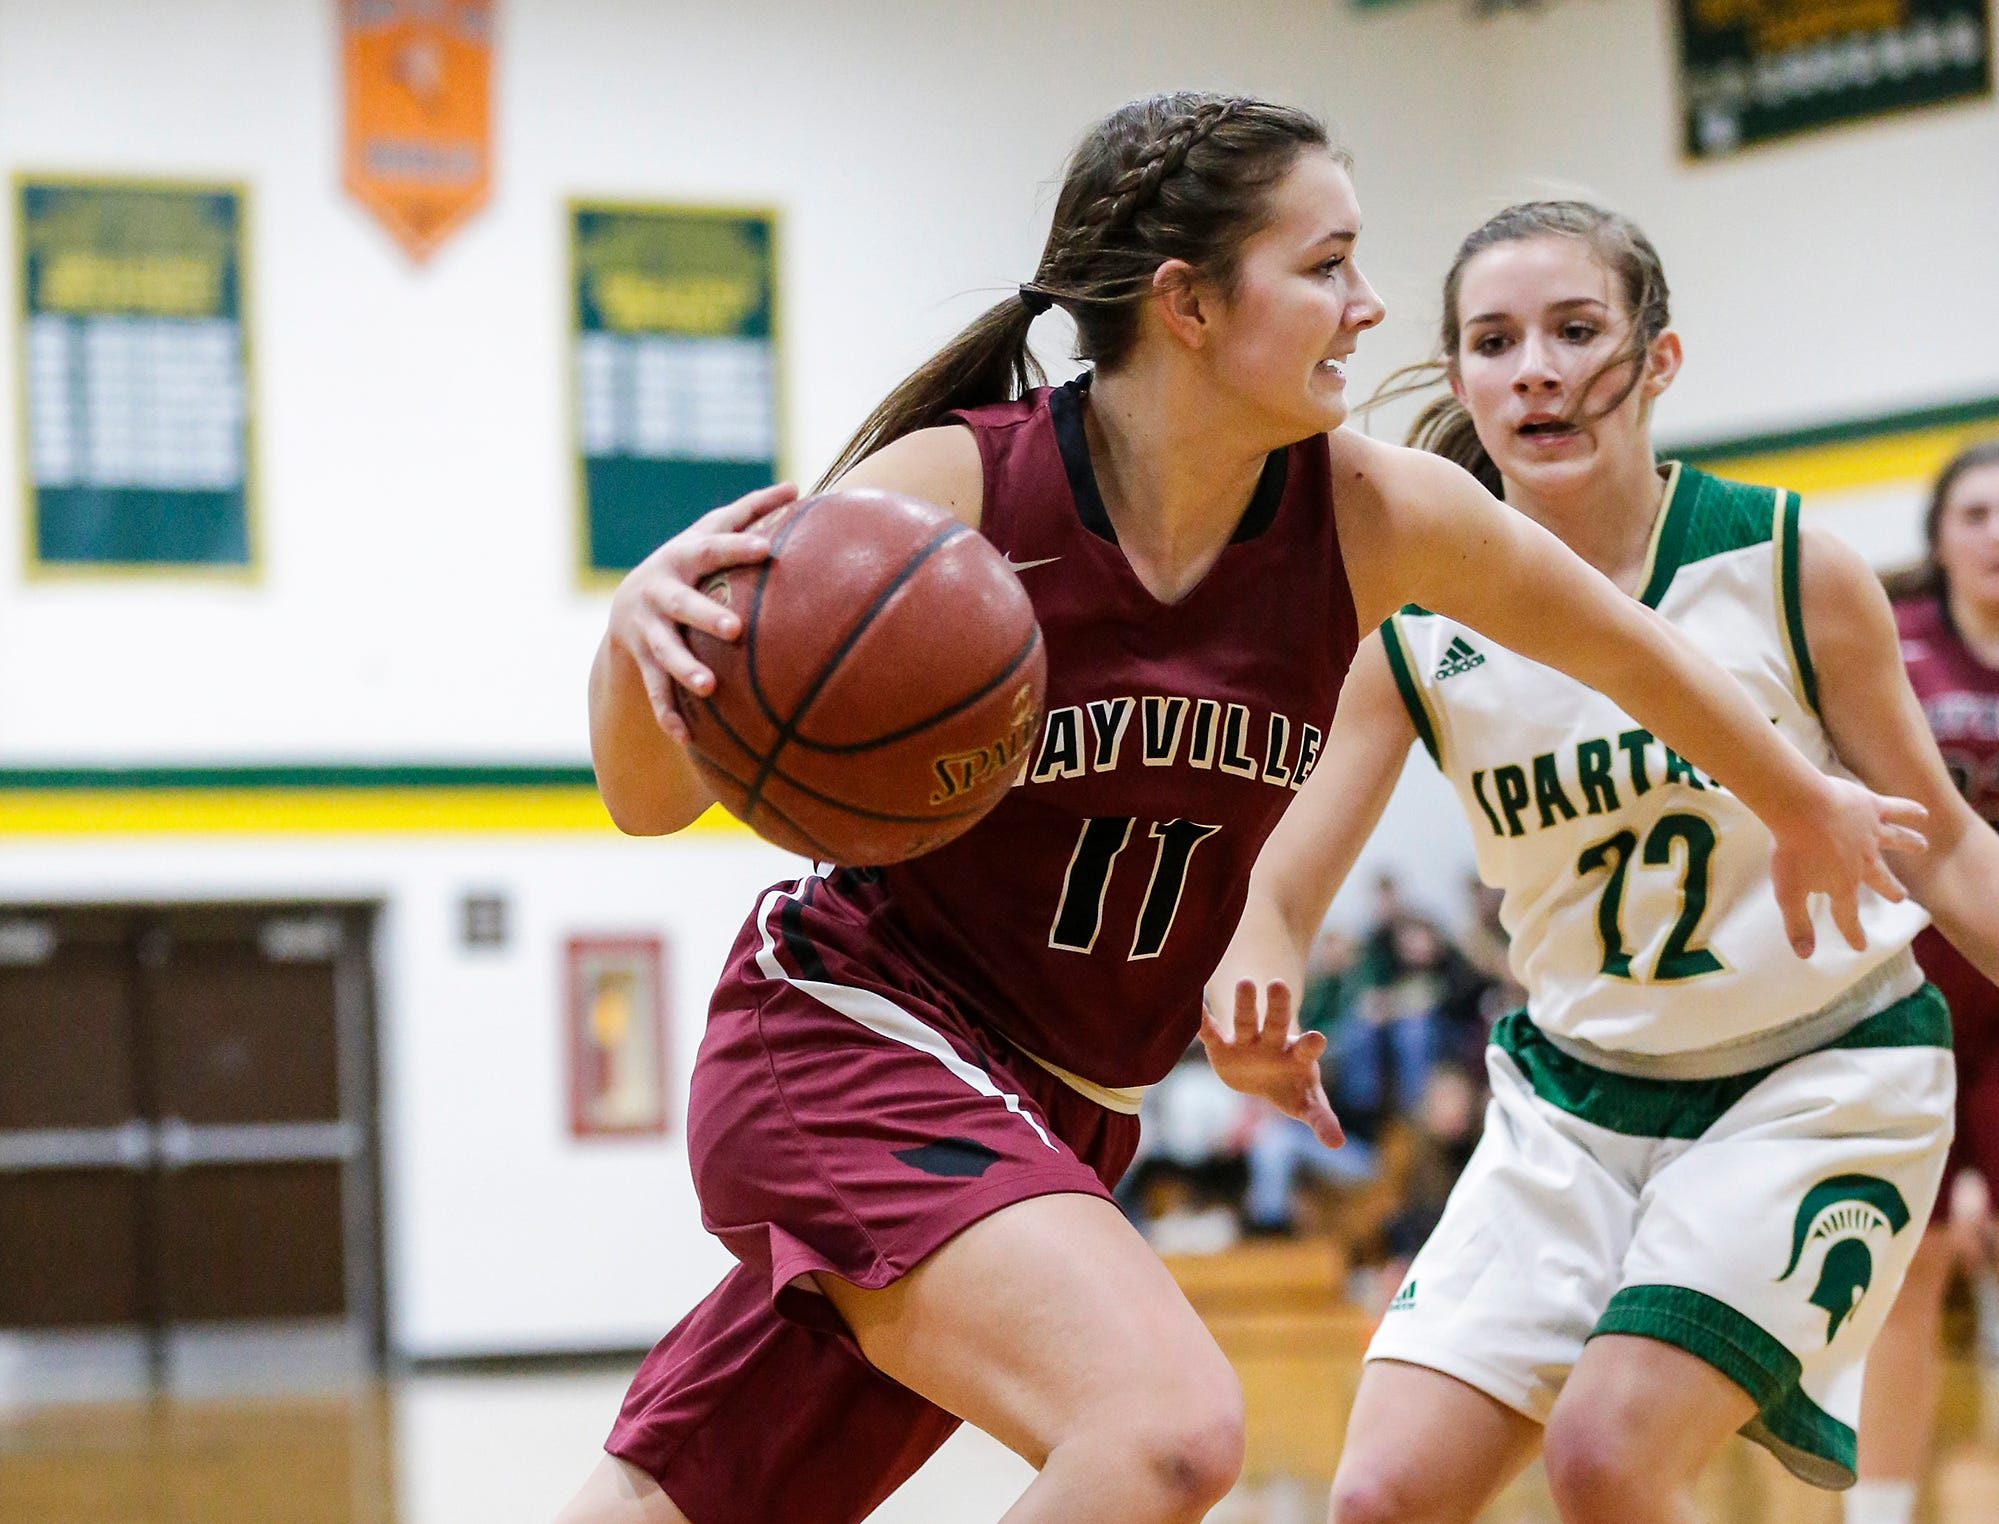 Mayville High School girls basketball's Whitney Liegl breaks towards the basket past Laconia High School's Haley Rens during their game Friday, November 30, 2018 in Rosendale. Doug Raflik/USA TODAY NETWORK-Wisconsin